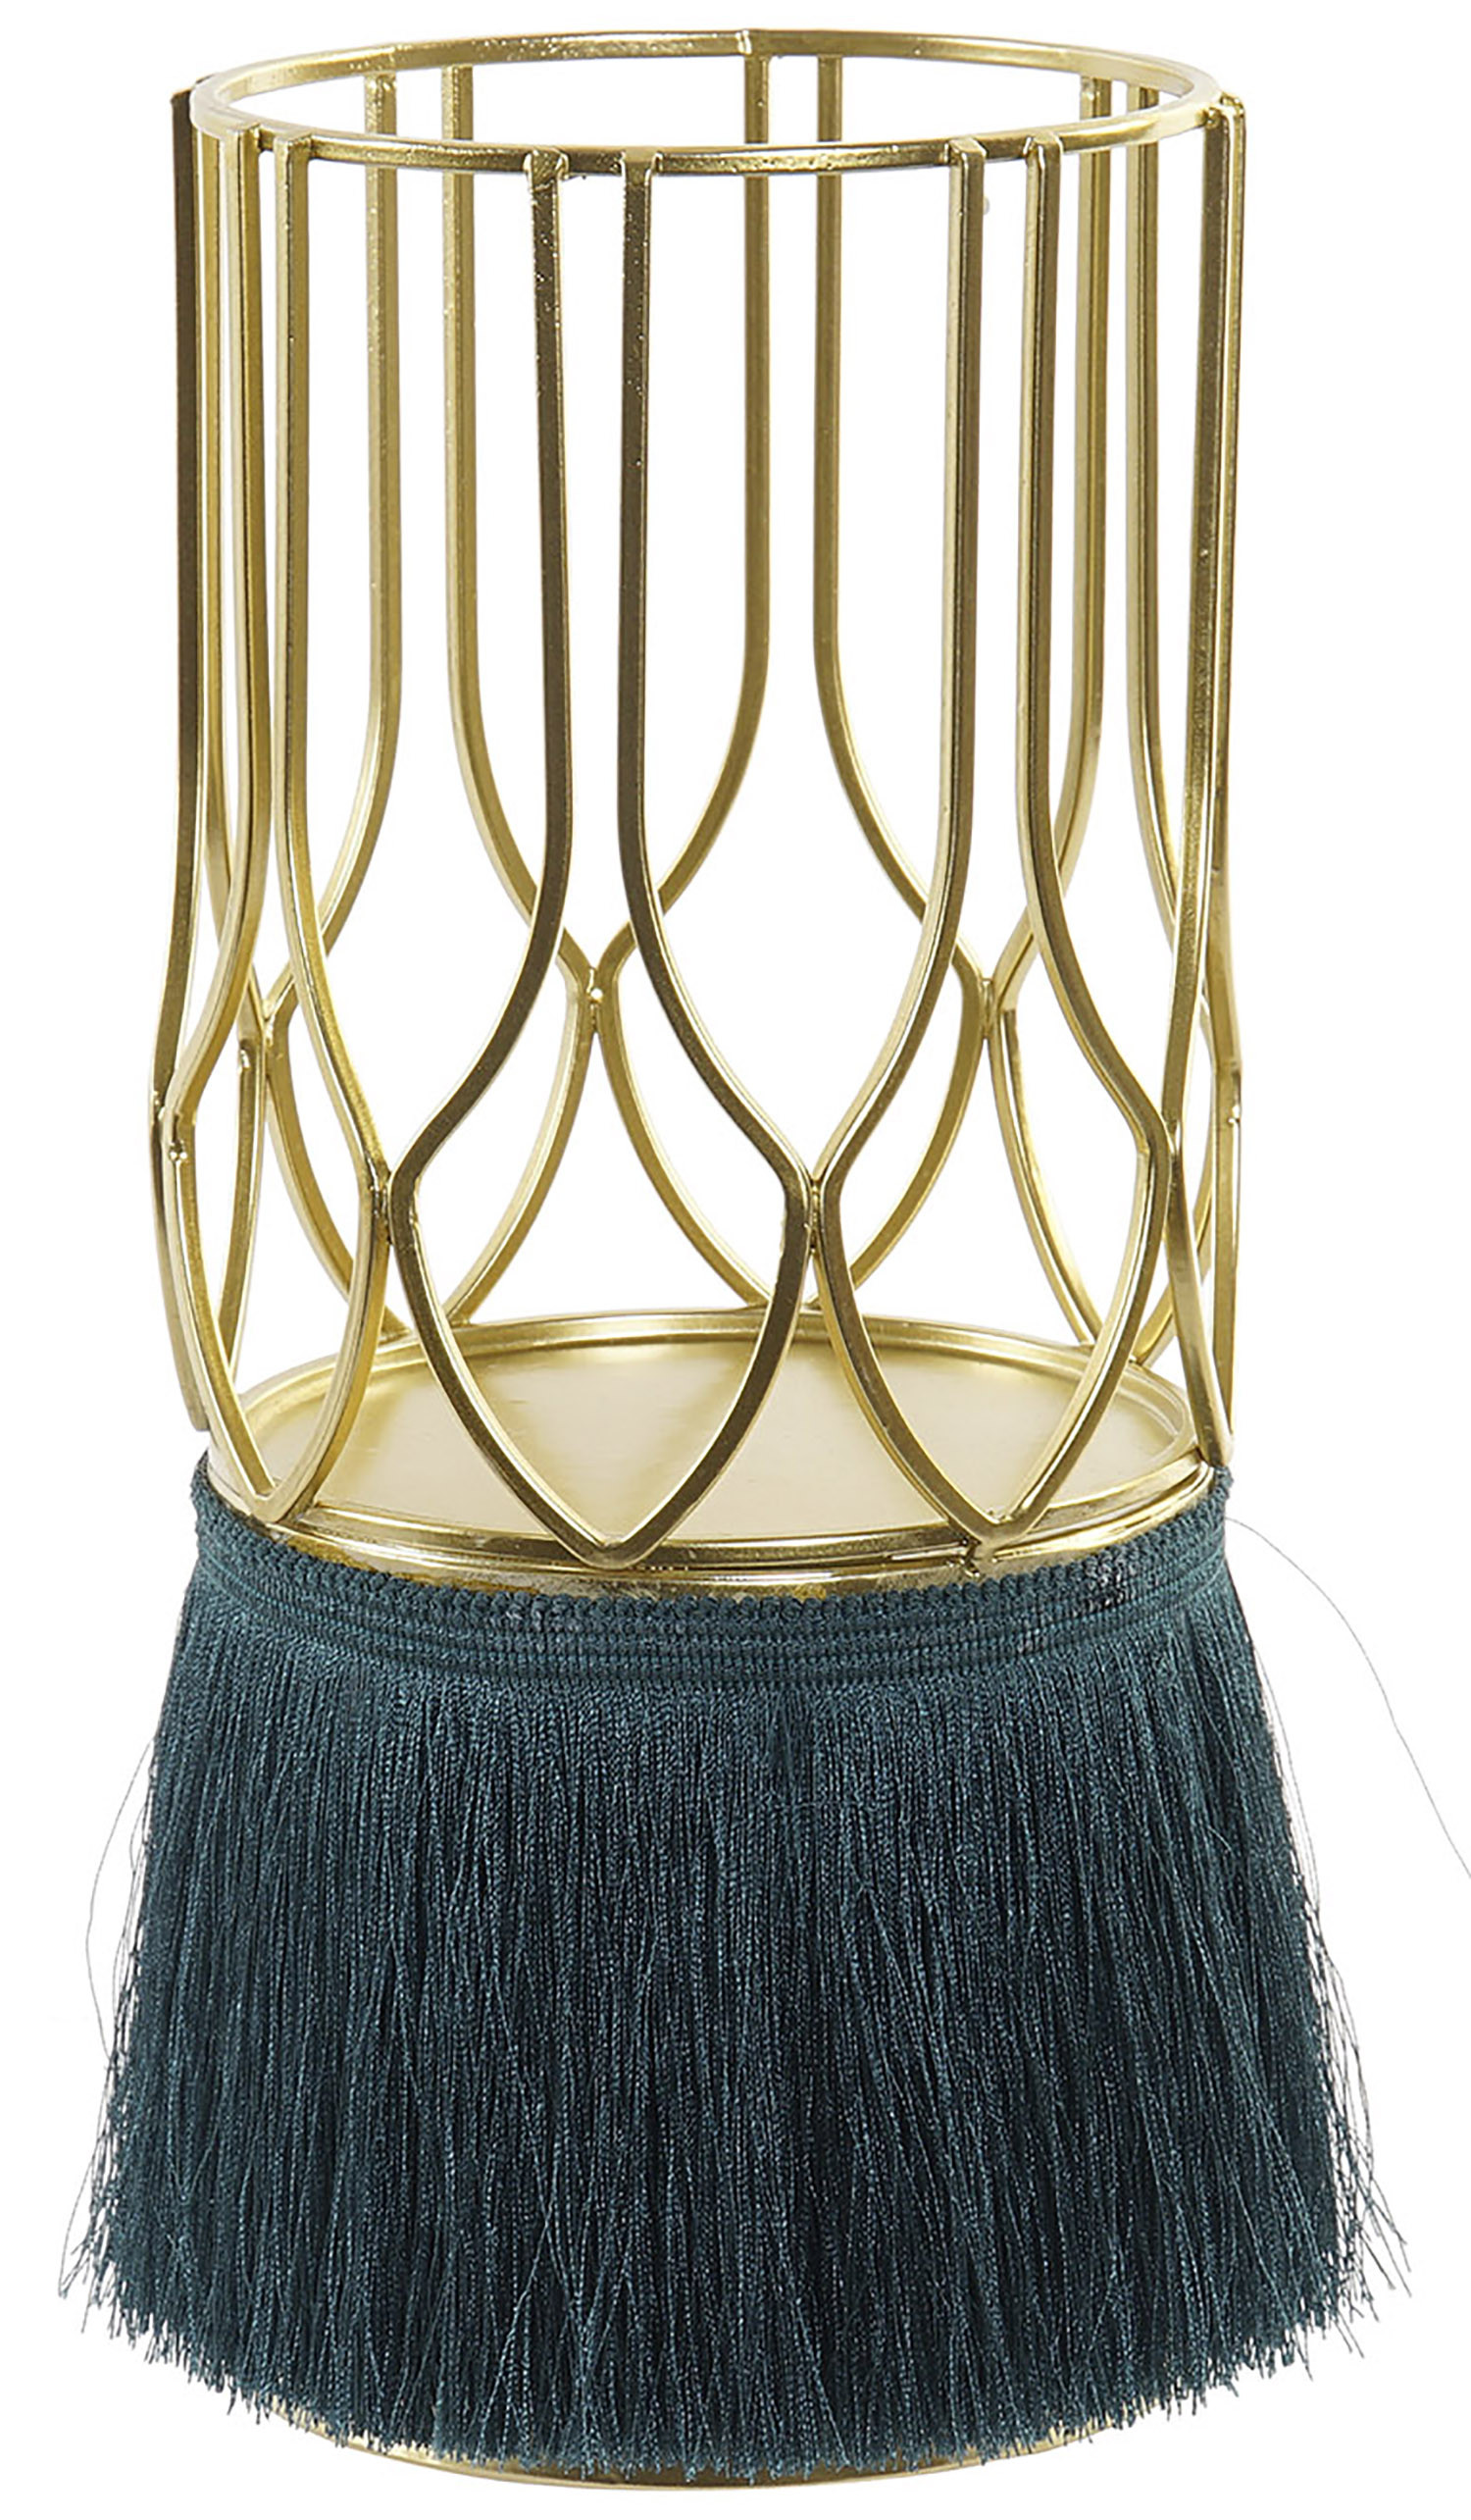 Porta candles with Metal Structure and Fringe, Porta candles Decorative Gold. Support Metal to Candle 11,5X11,5X26 cm